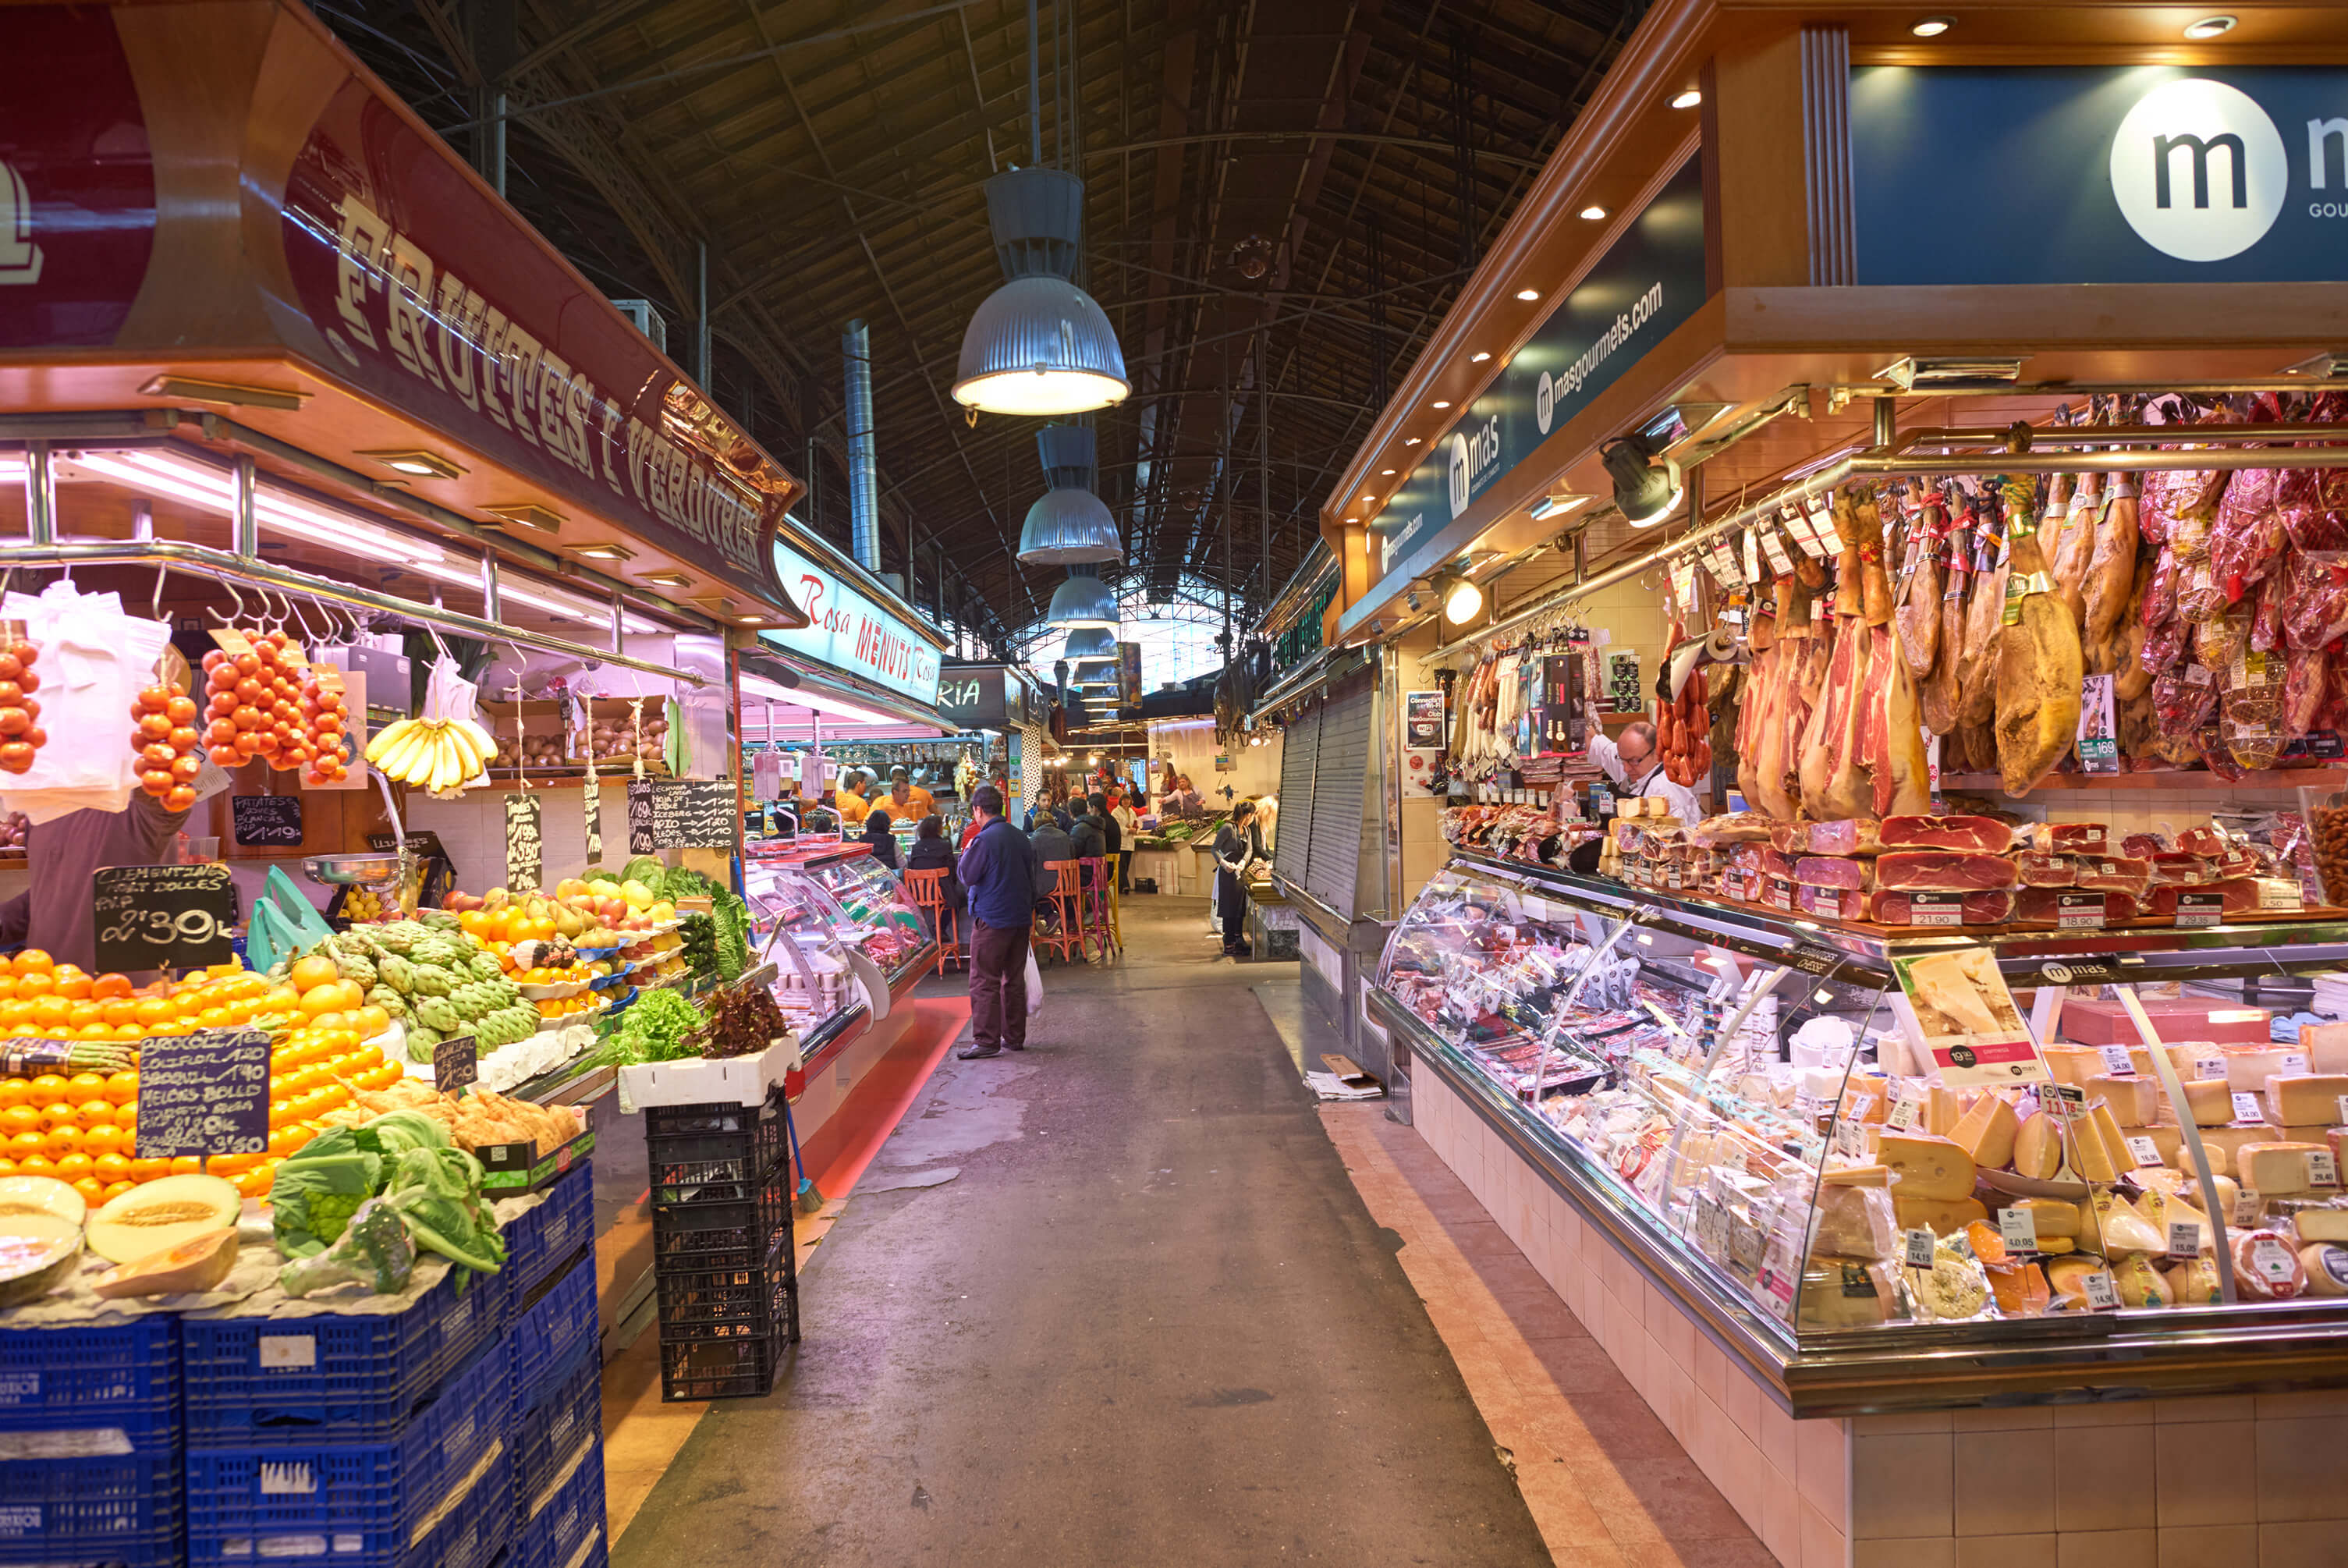 Barcelona Spain Travel - La Boqueria Mercat Walking Tour